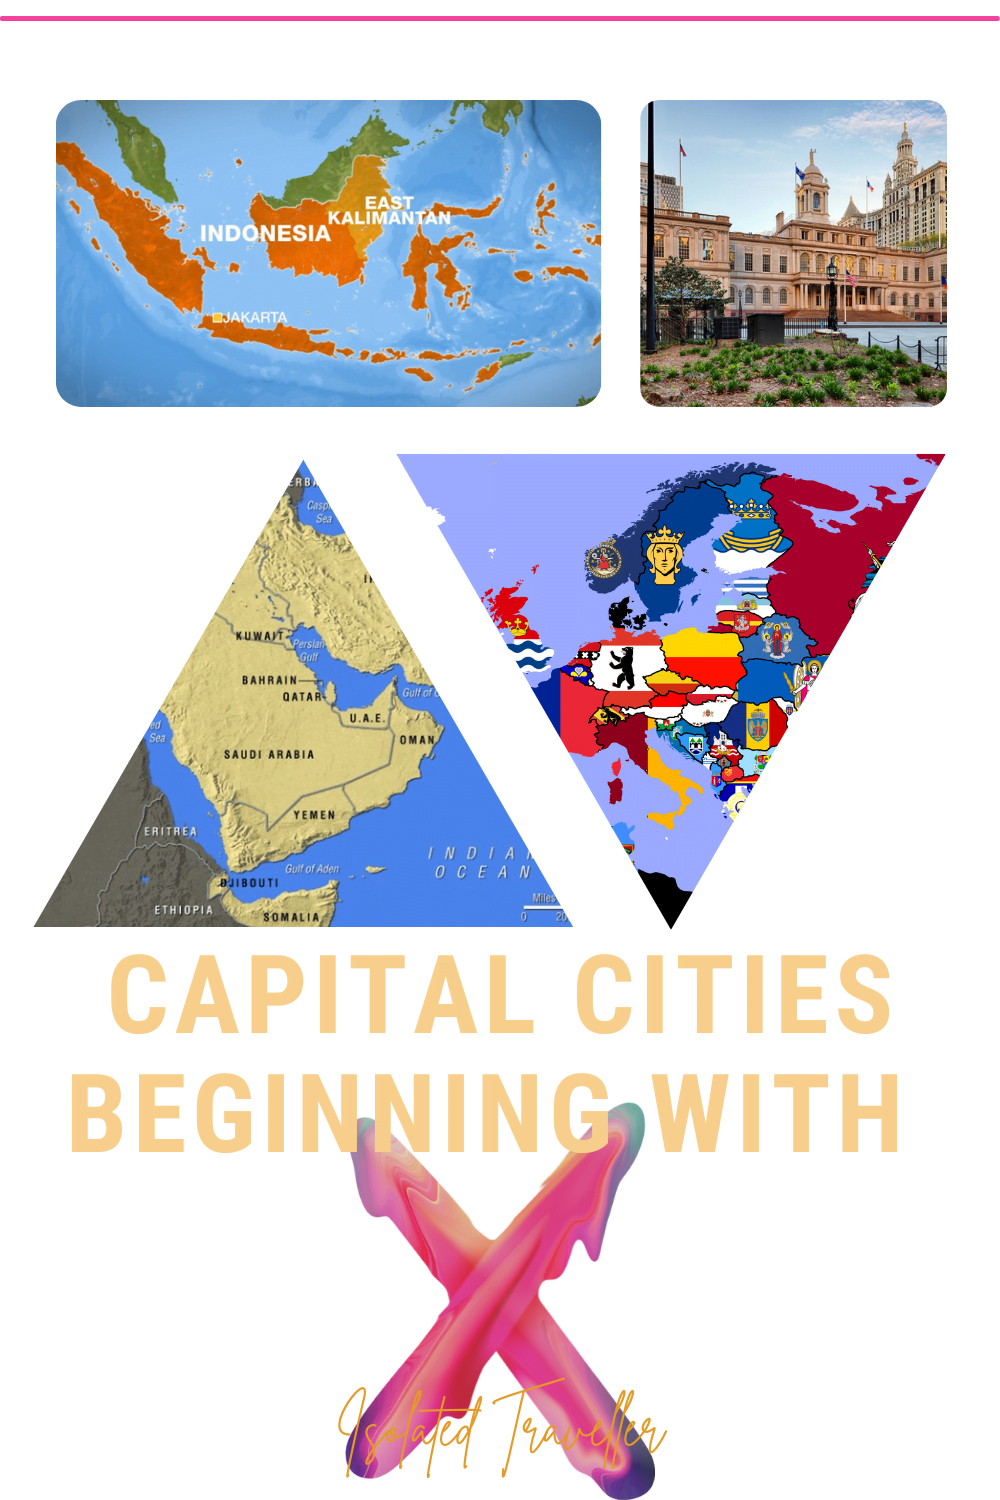 Capital Cities beginning with x